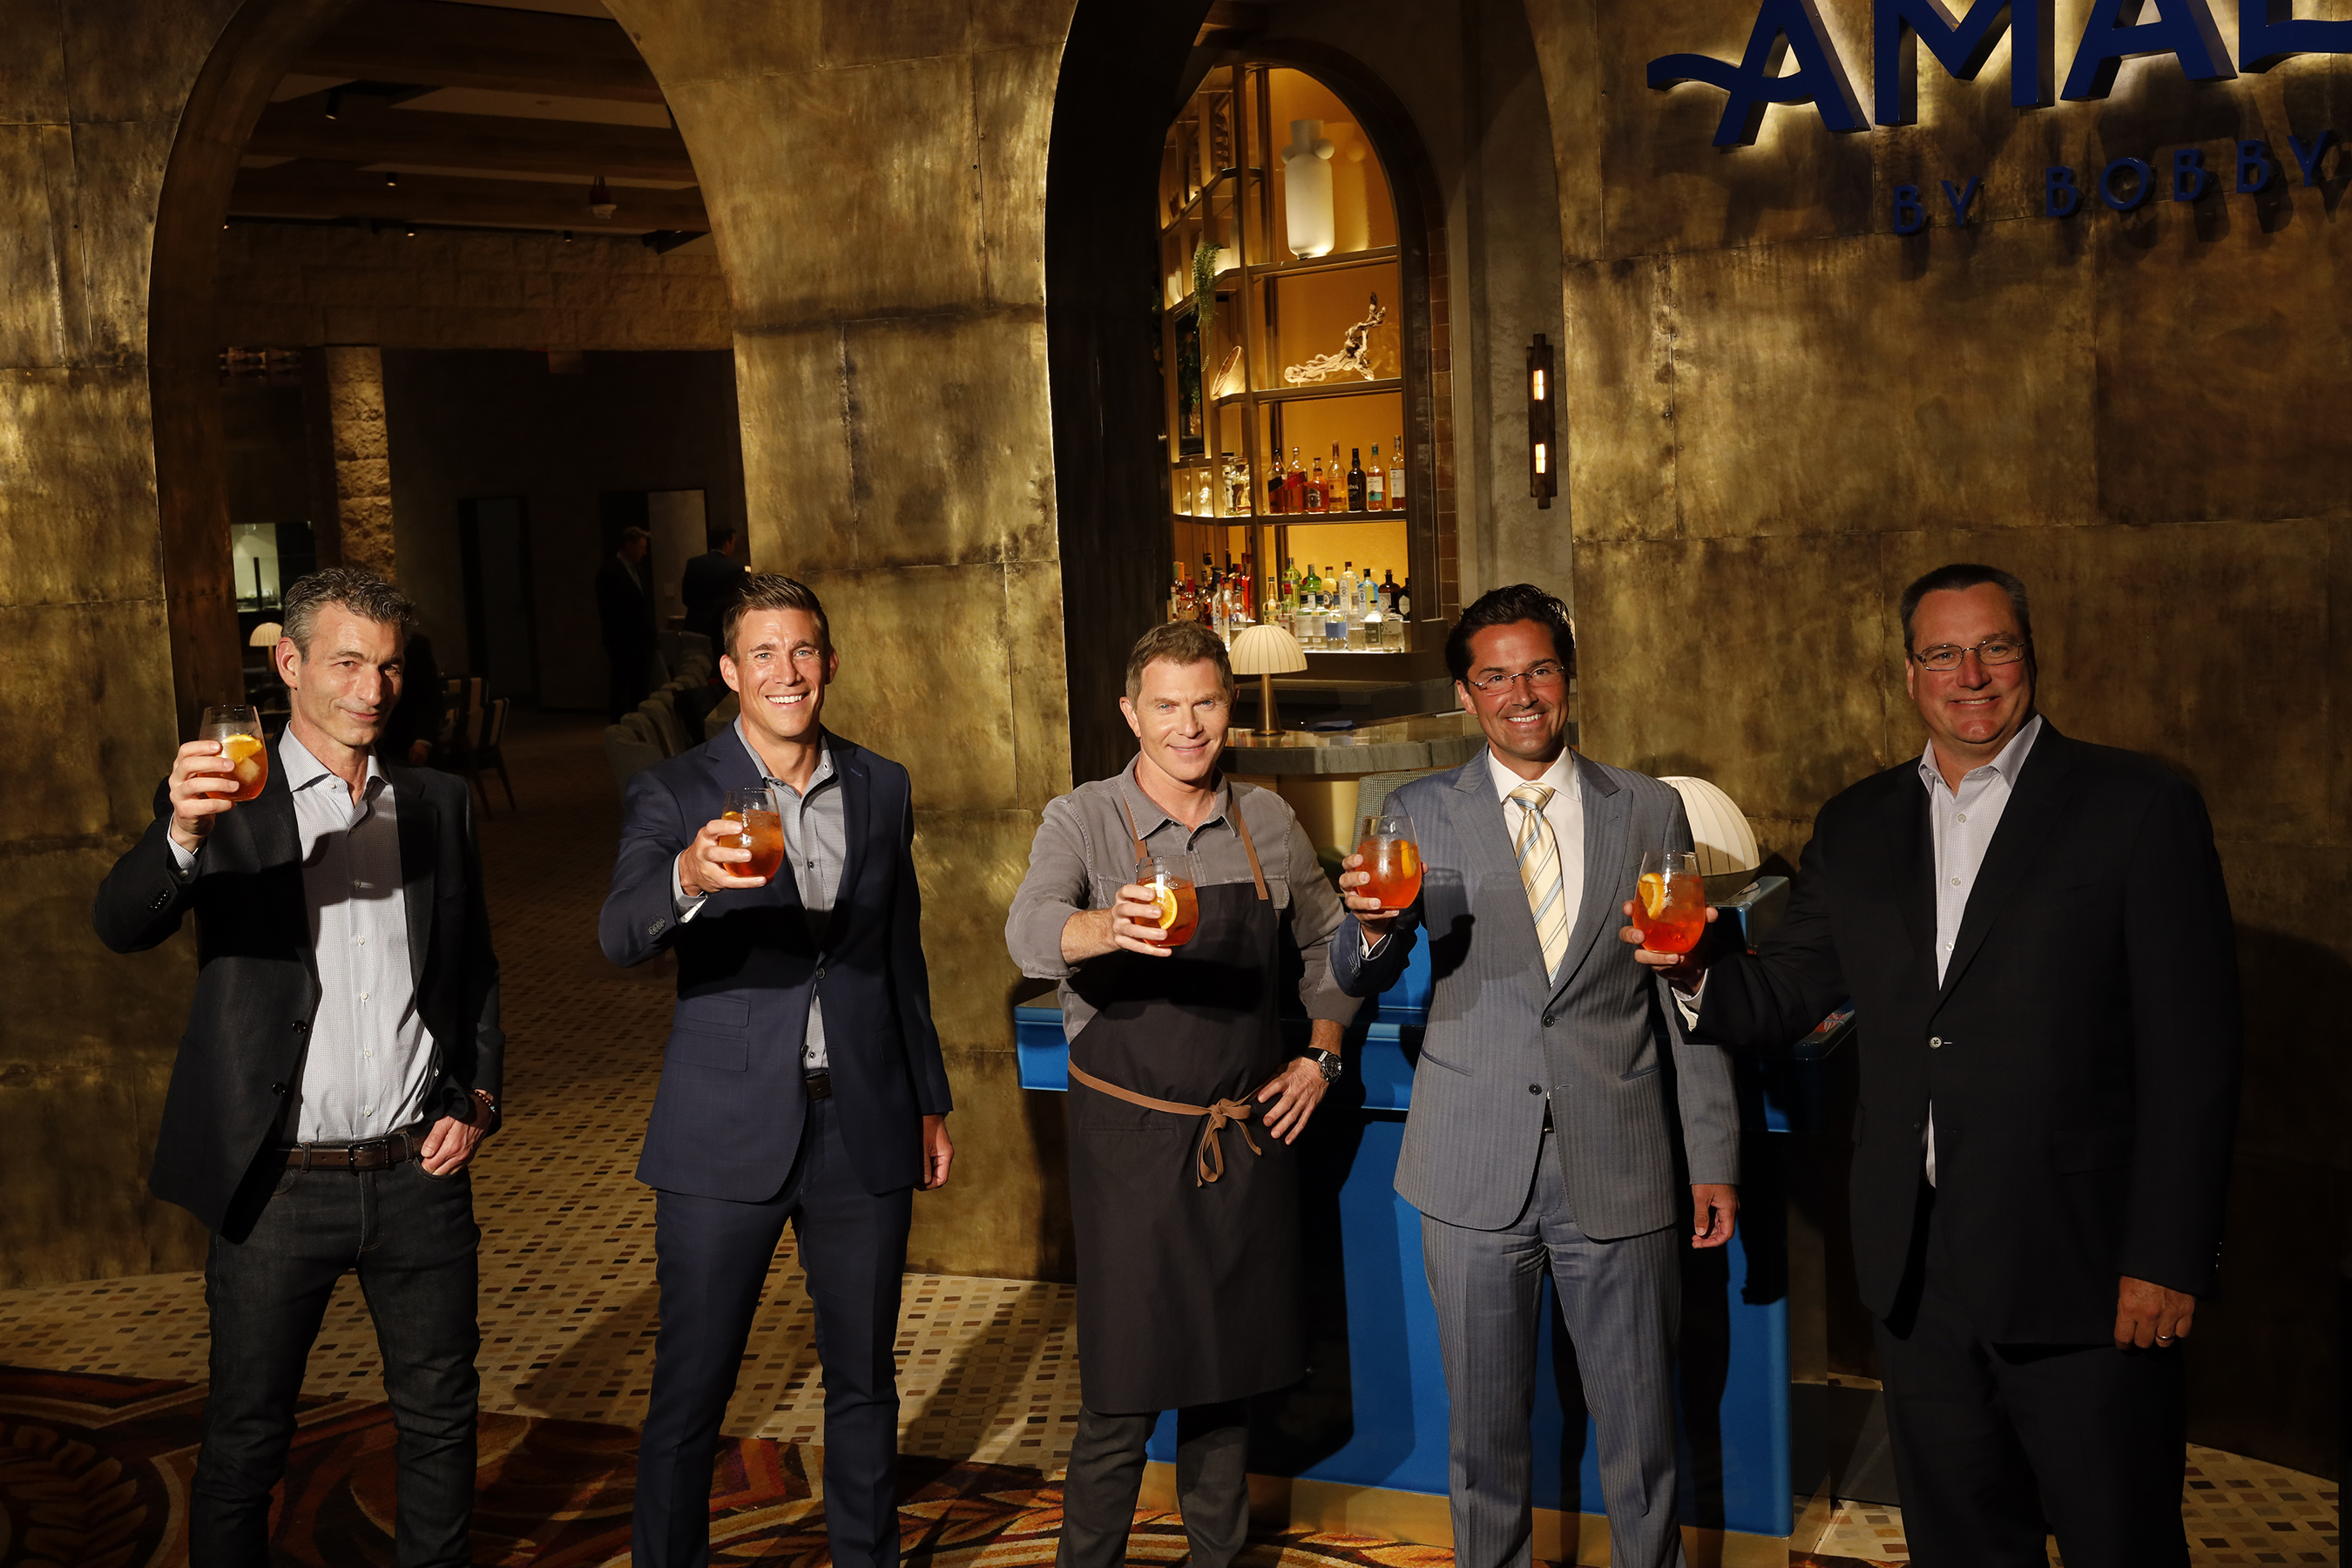 (L to R) - Business Partner Laurence Kretchmer, Caesars Entertainment President & COO Anthony Carano, Chef Bobby Flay, Caesars Entertainment Regional President Sean McBurney, Caesars Entertainment CEO Tom Reeg at the Amalfi by Bobby Flay Grand Opening Event at Caesars Palace Las Vegas